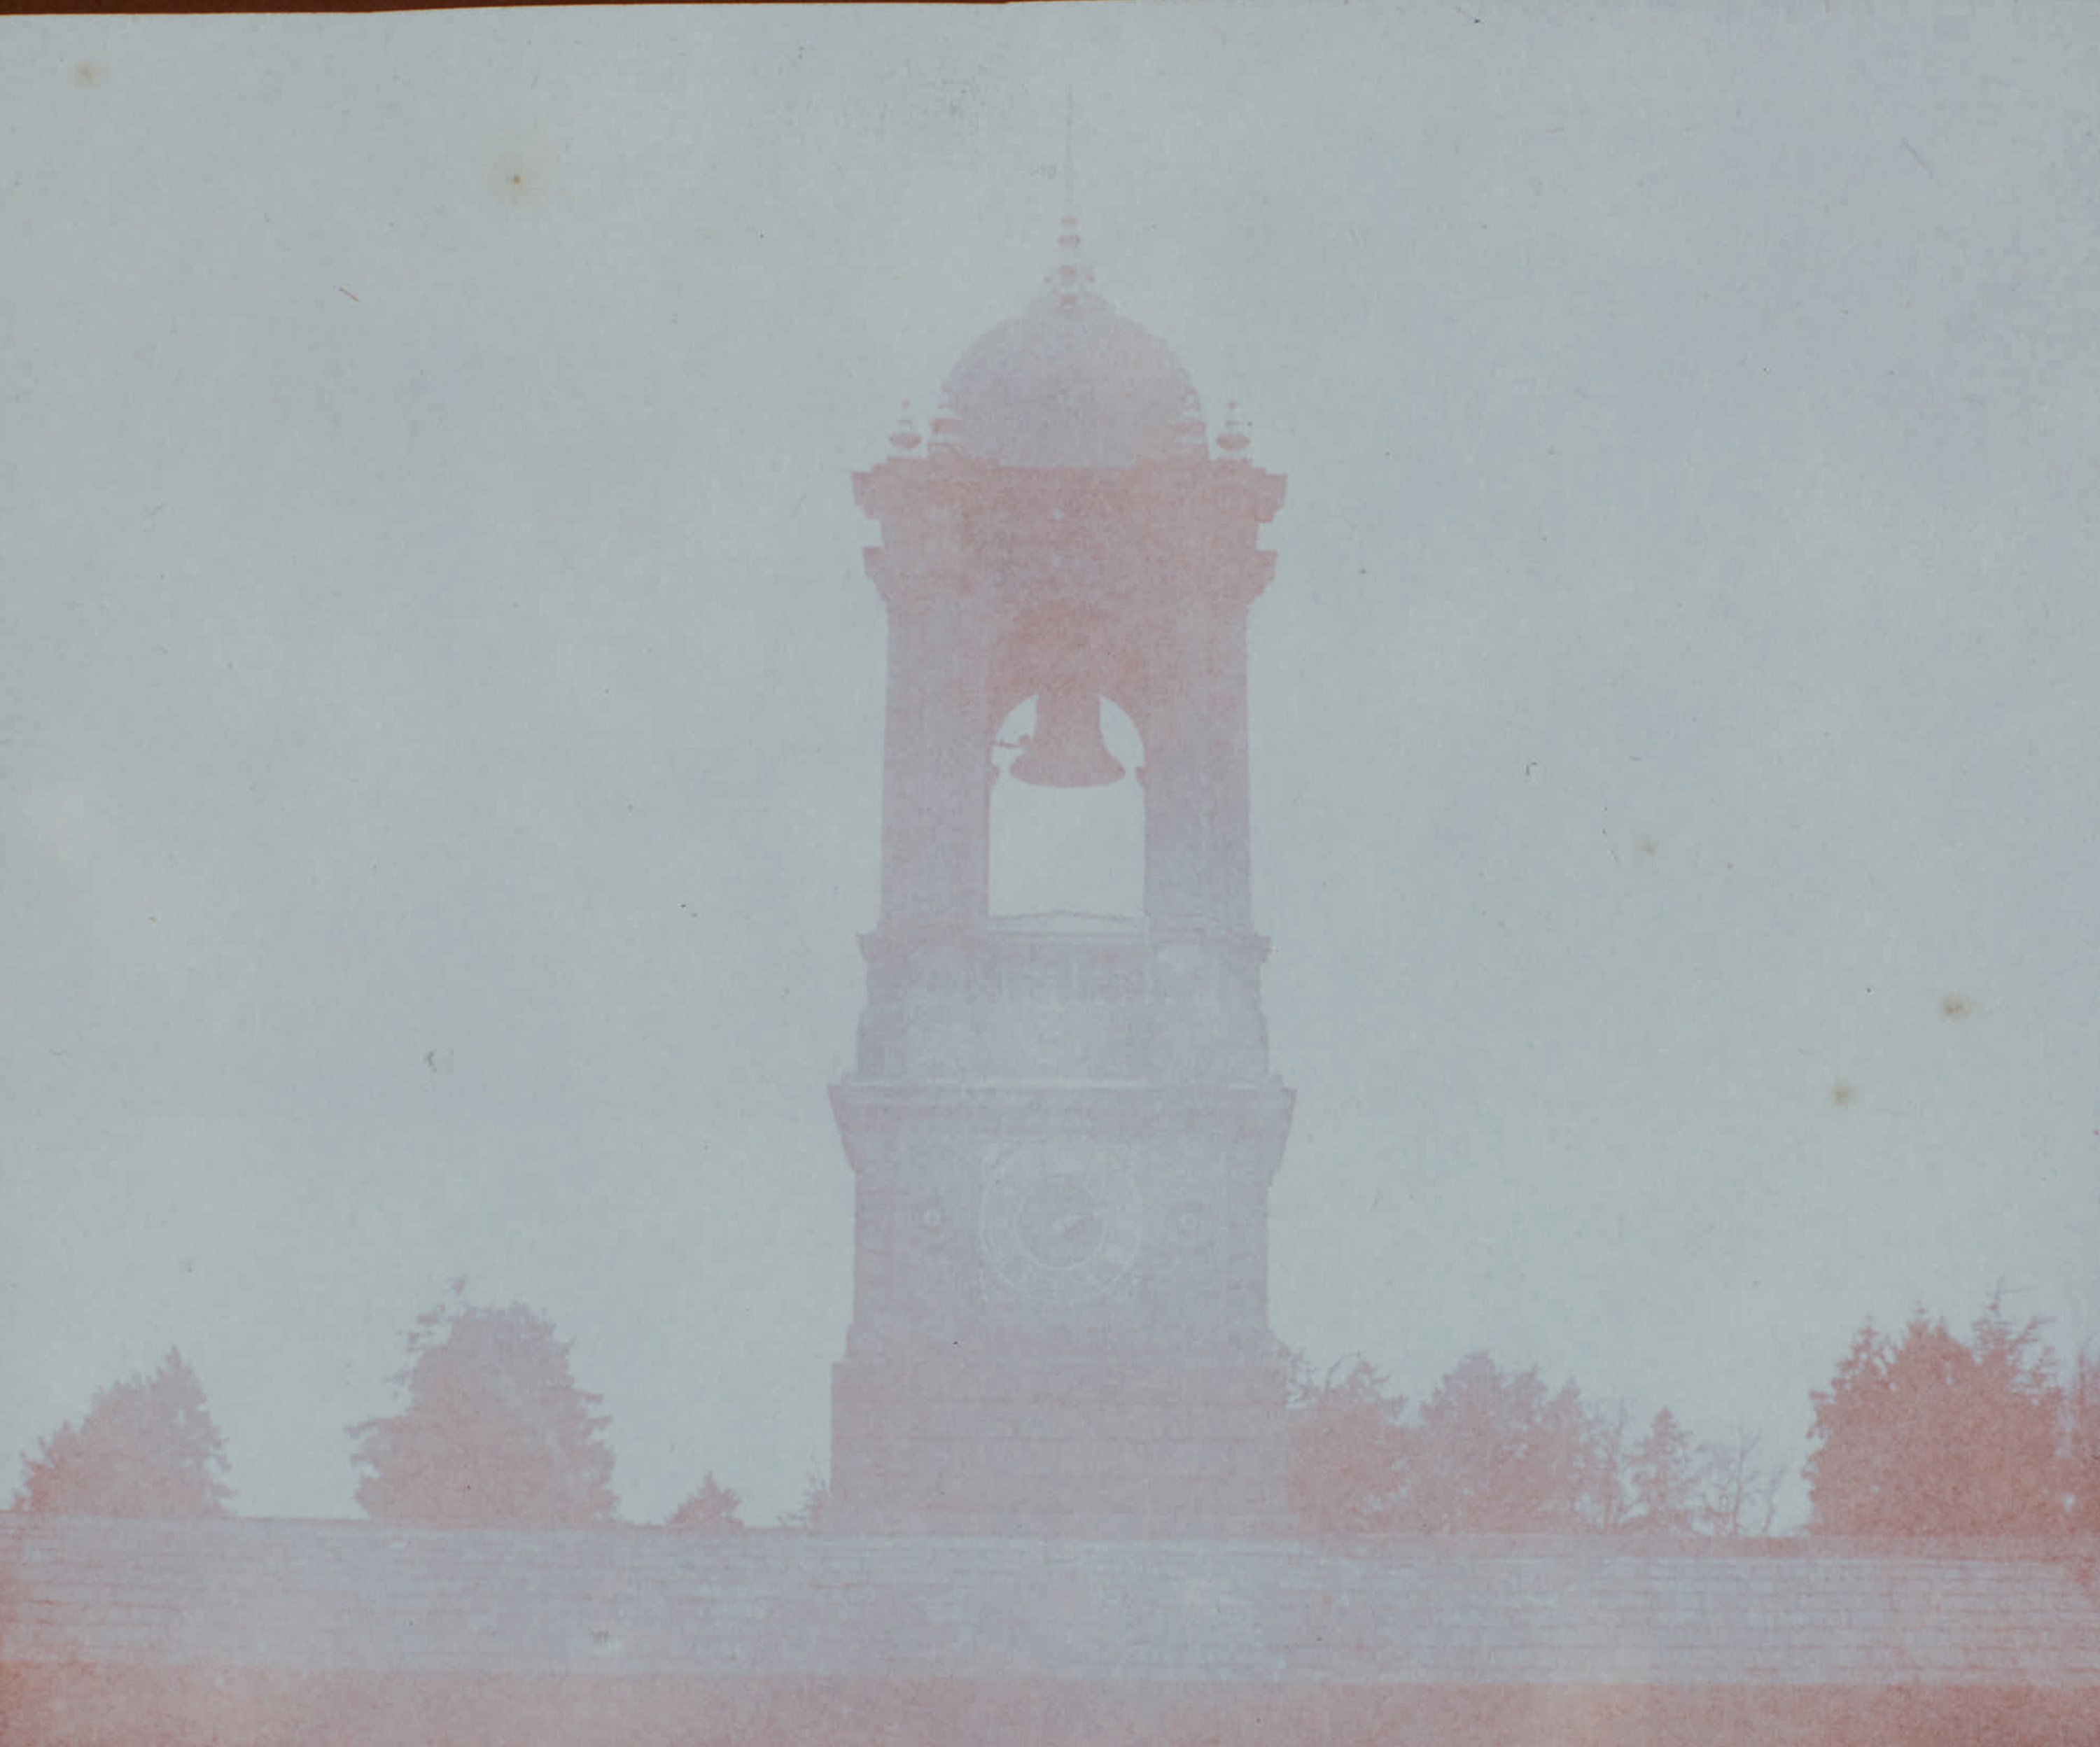 Fotó: William Henry Fox Talbot:<br />Bell tower at Bowood House with clock showing the time at 230 pm, possibly a 5 minute exposure (1842)<br />William Henry Fox Talbot Archive<br />Courtesy of Sotheby's